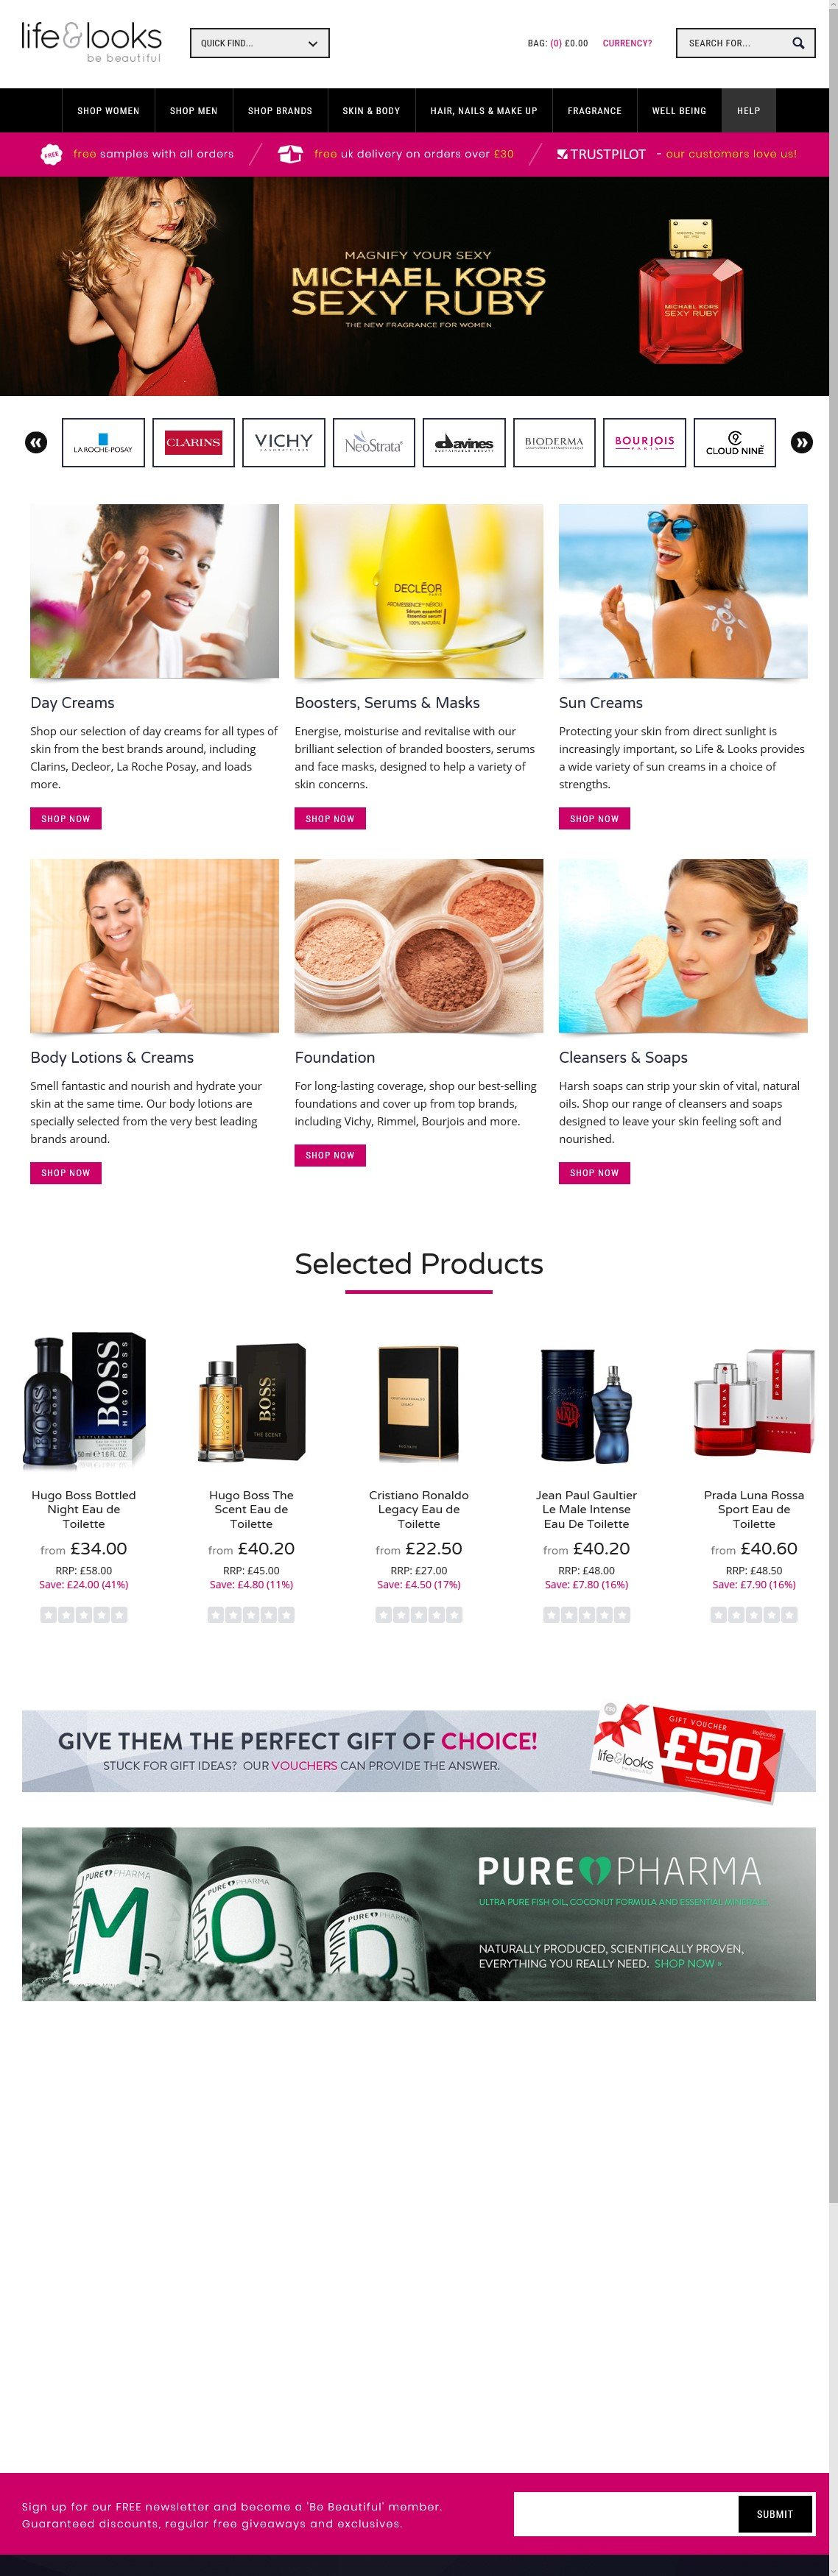 Life and looks is for all your beauty, health, hair products and Fragrances at the lowest prices online